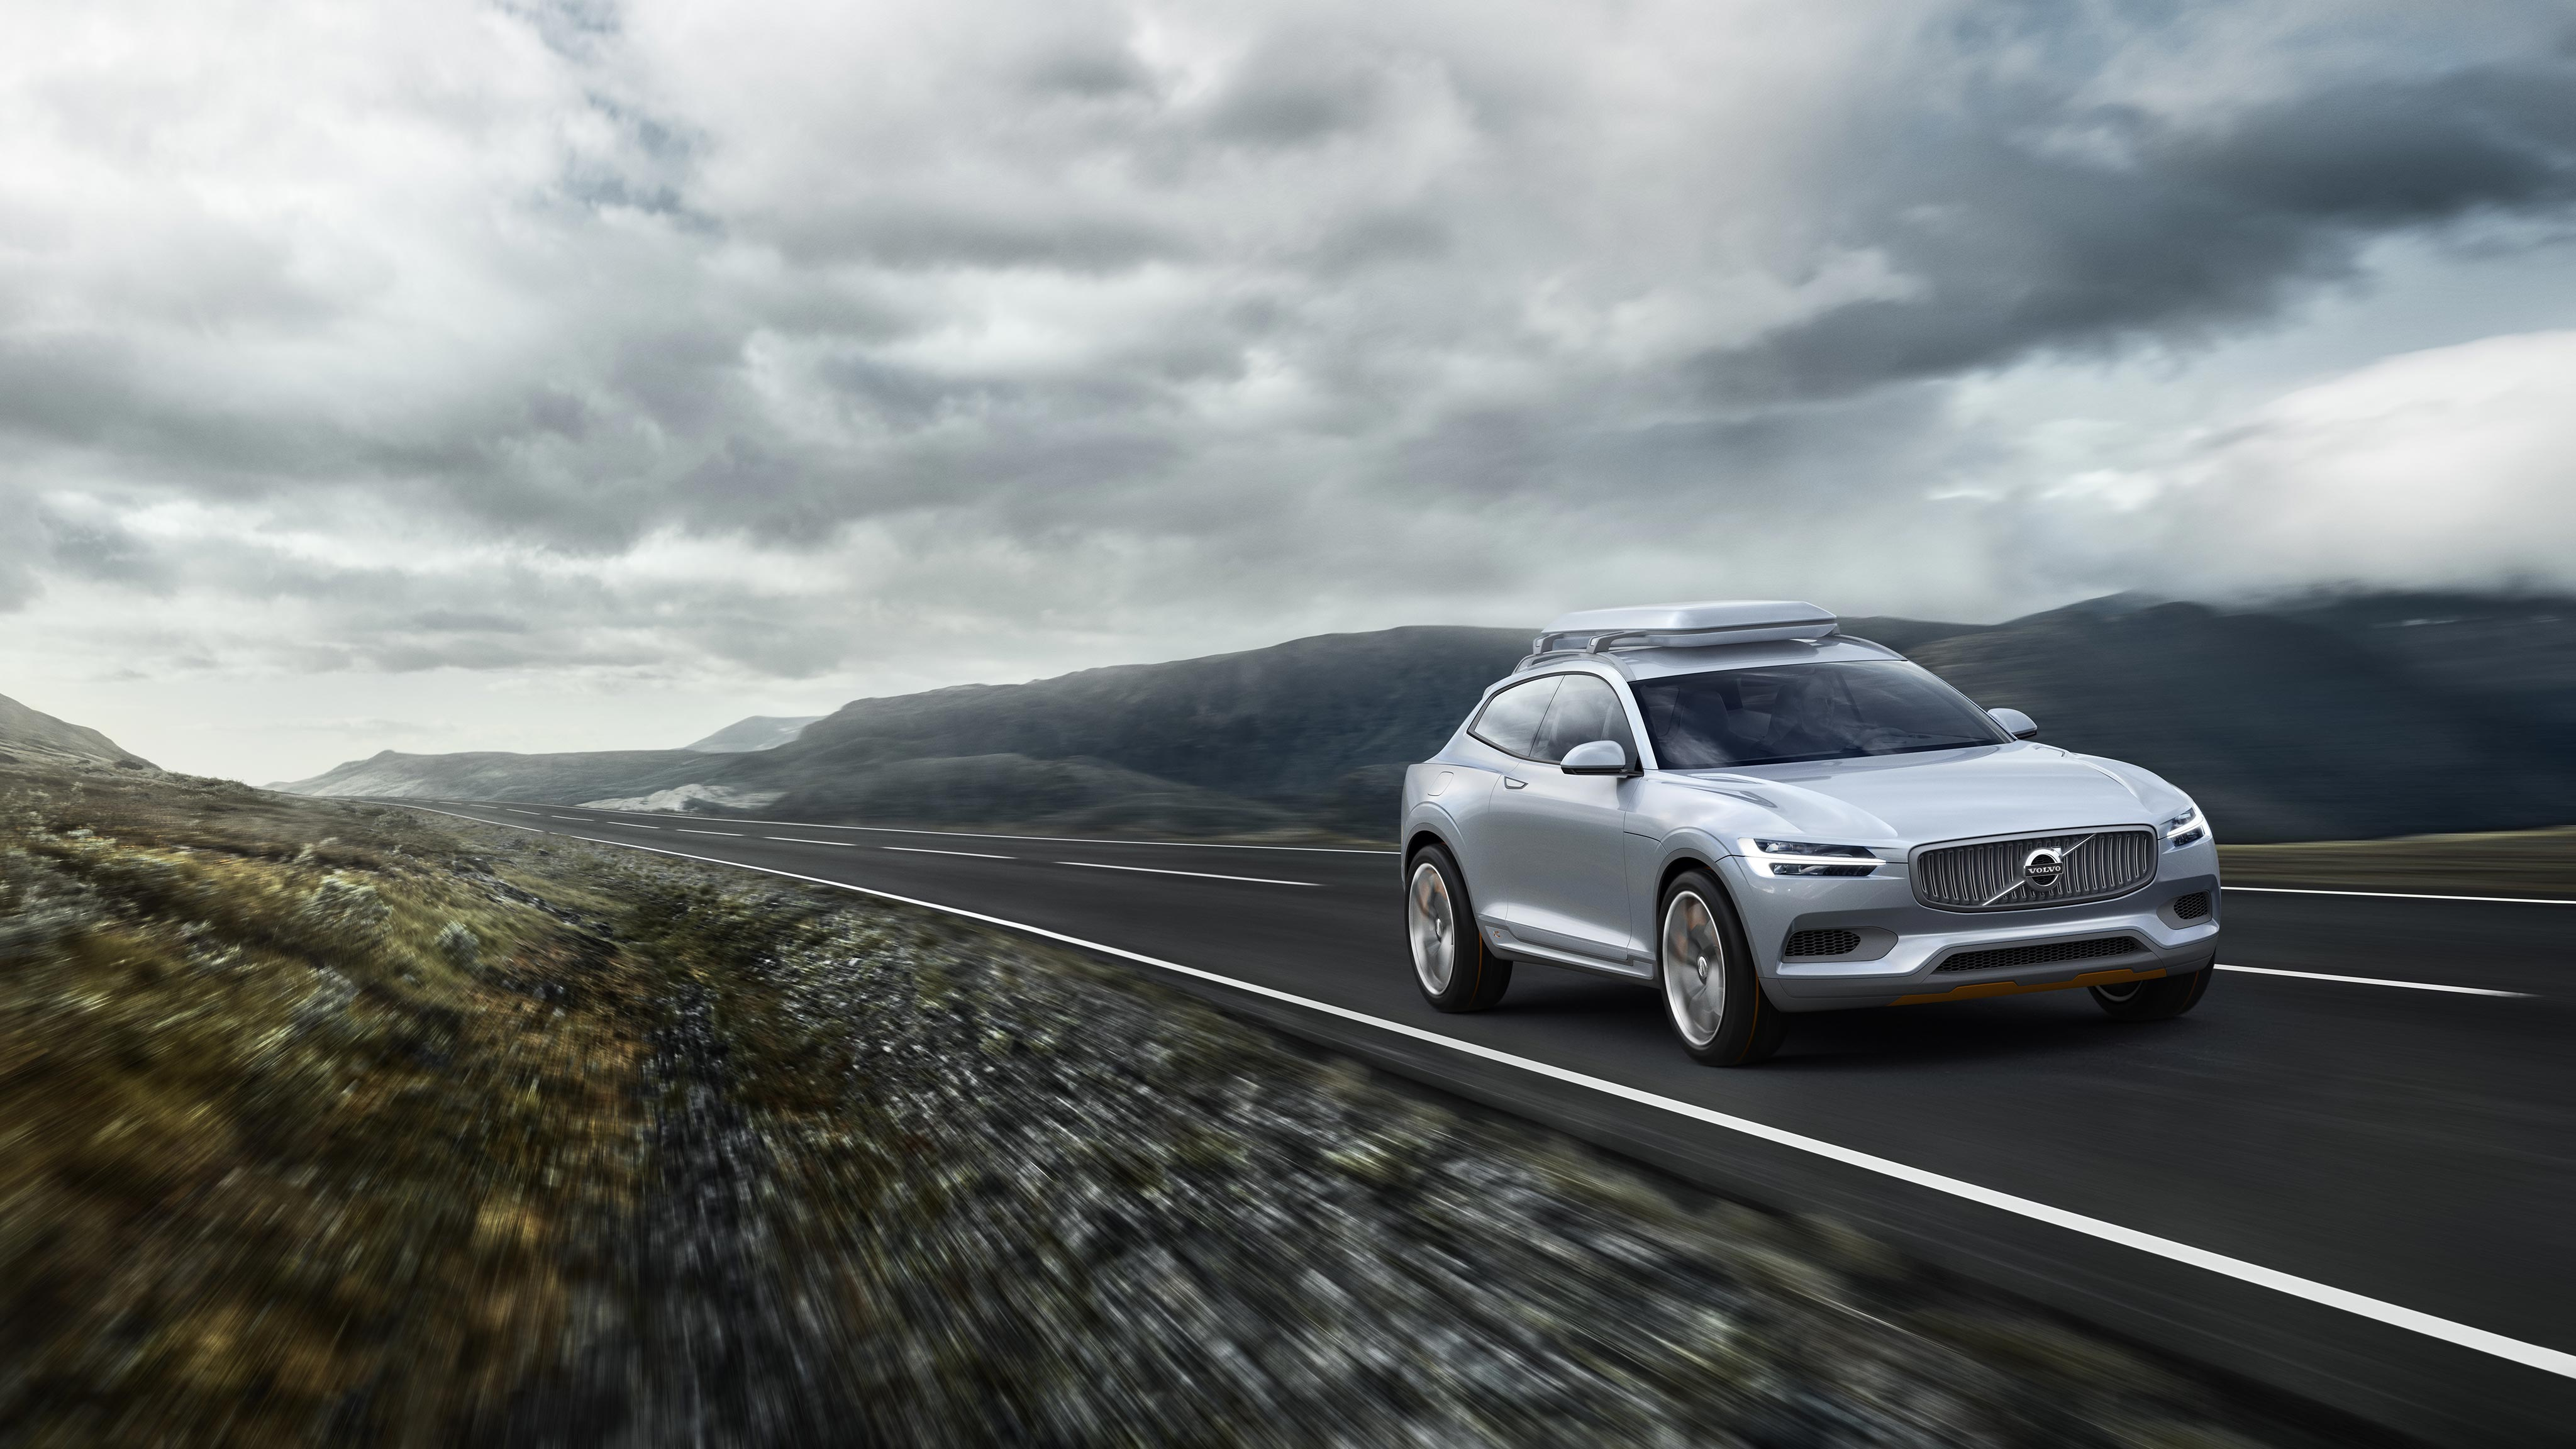 Volvo Concept Cars - The XC Coupe | Volvo Cars